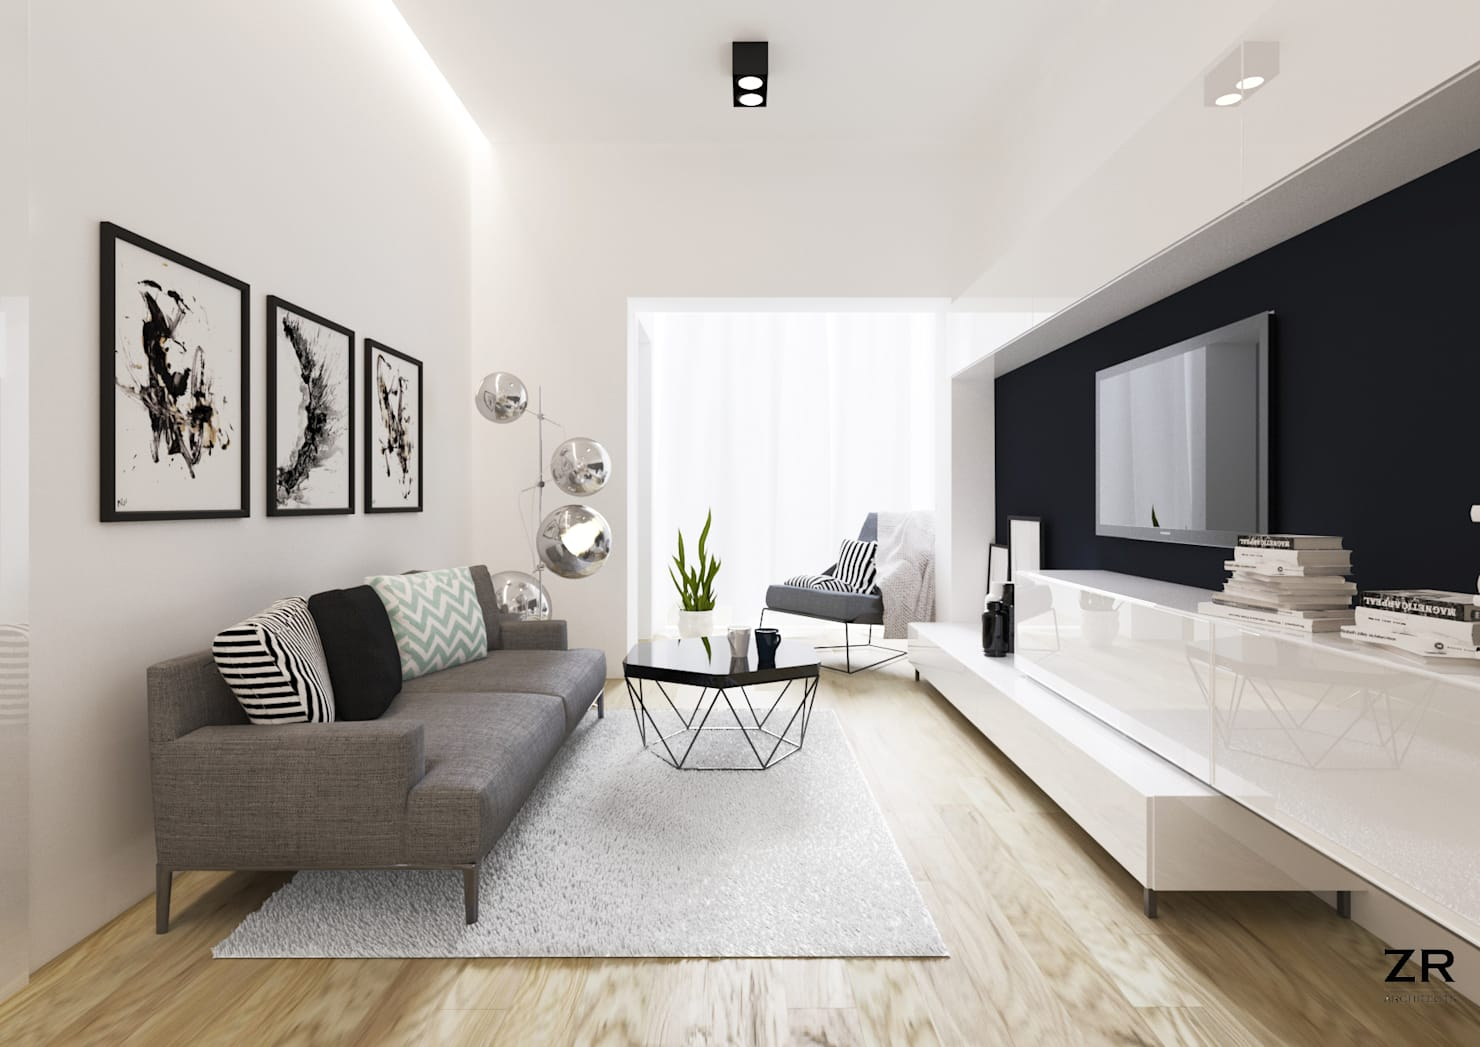 6 ways to make your apartment look grown-up and sophisticated